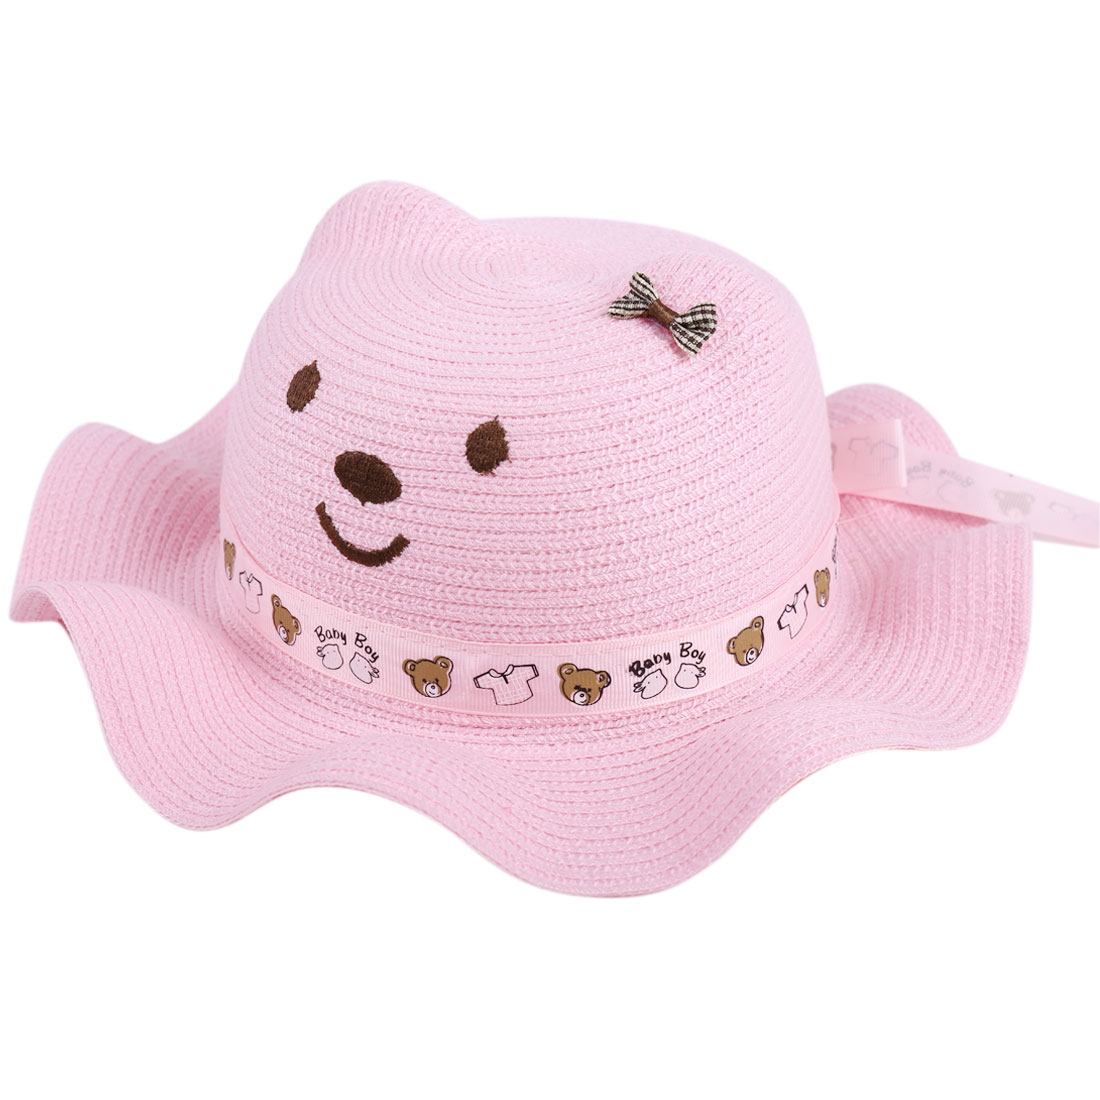 Cute Pink Color Elastic Neck Strap Design Wavy Brim Sun Straw Hat for Girl